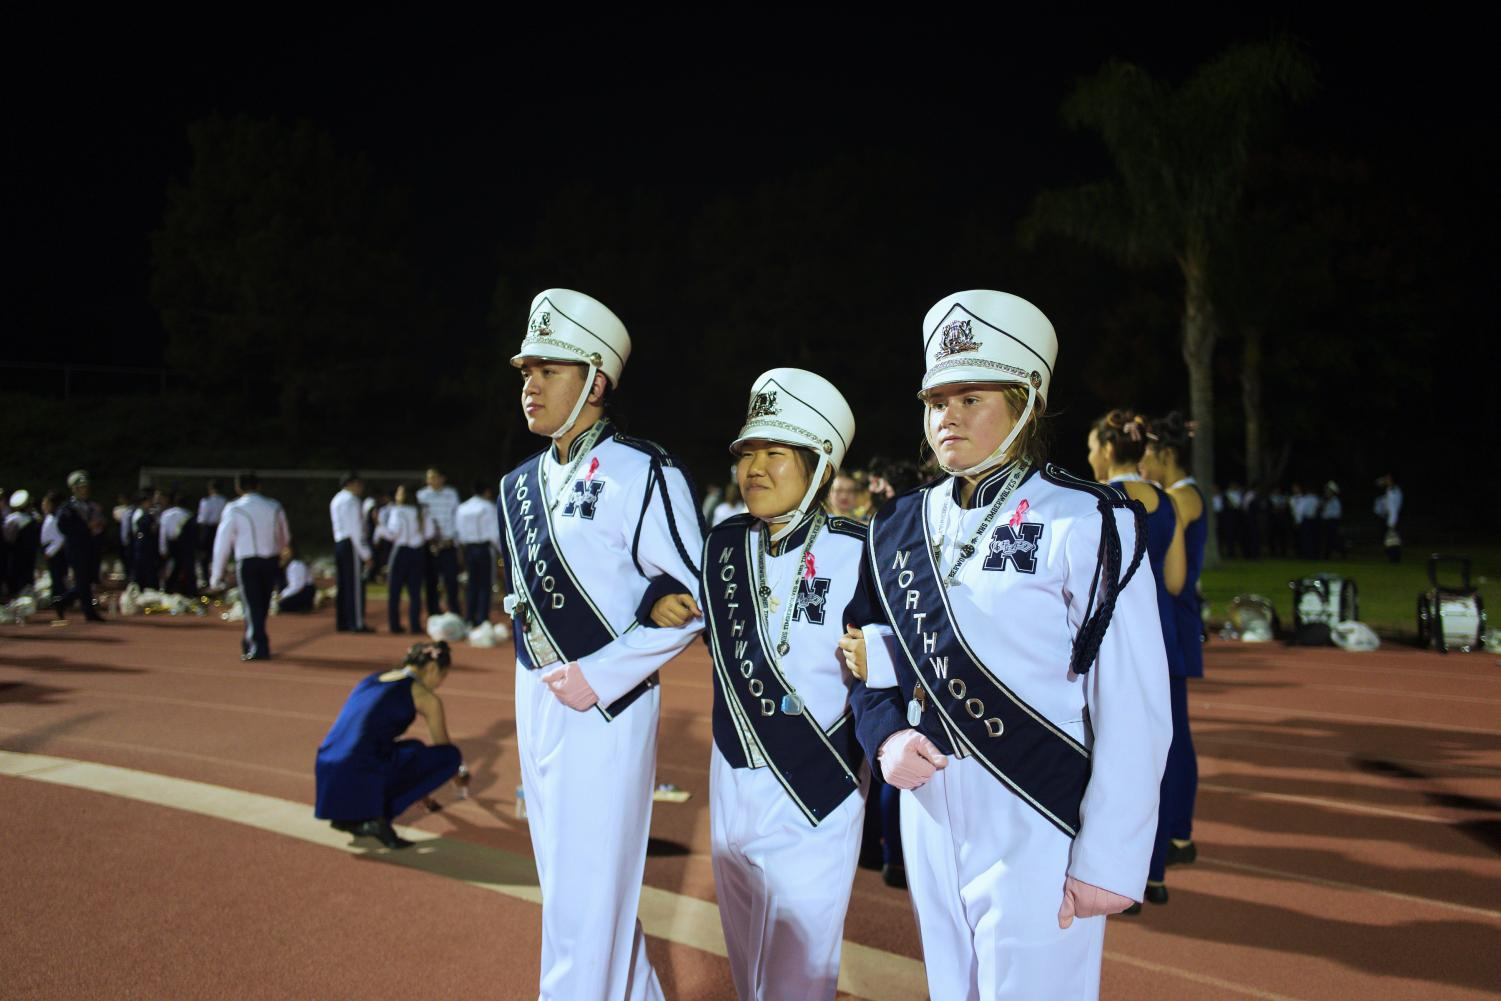 BAND TEN HUT: (left to right) Sepulveda, Fujimori and Miller prepare to call Marching Band to order.